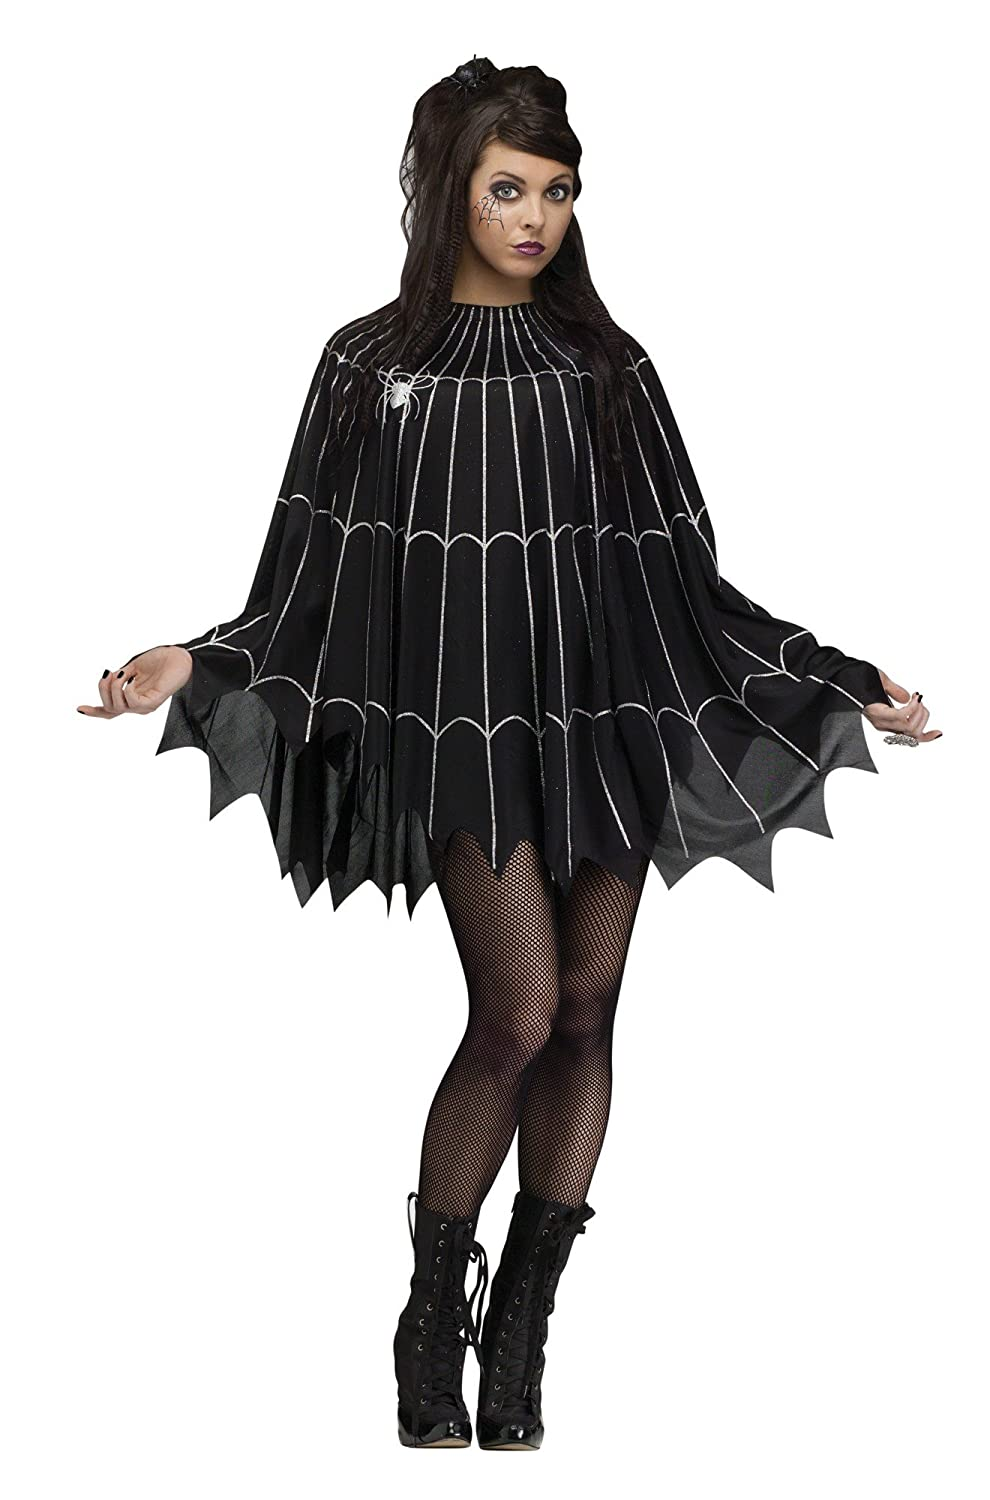 Hippie Costumes, Hippie Outfits Spider Web Poncho Adult Costume $15.08 AT vintagedancer.com